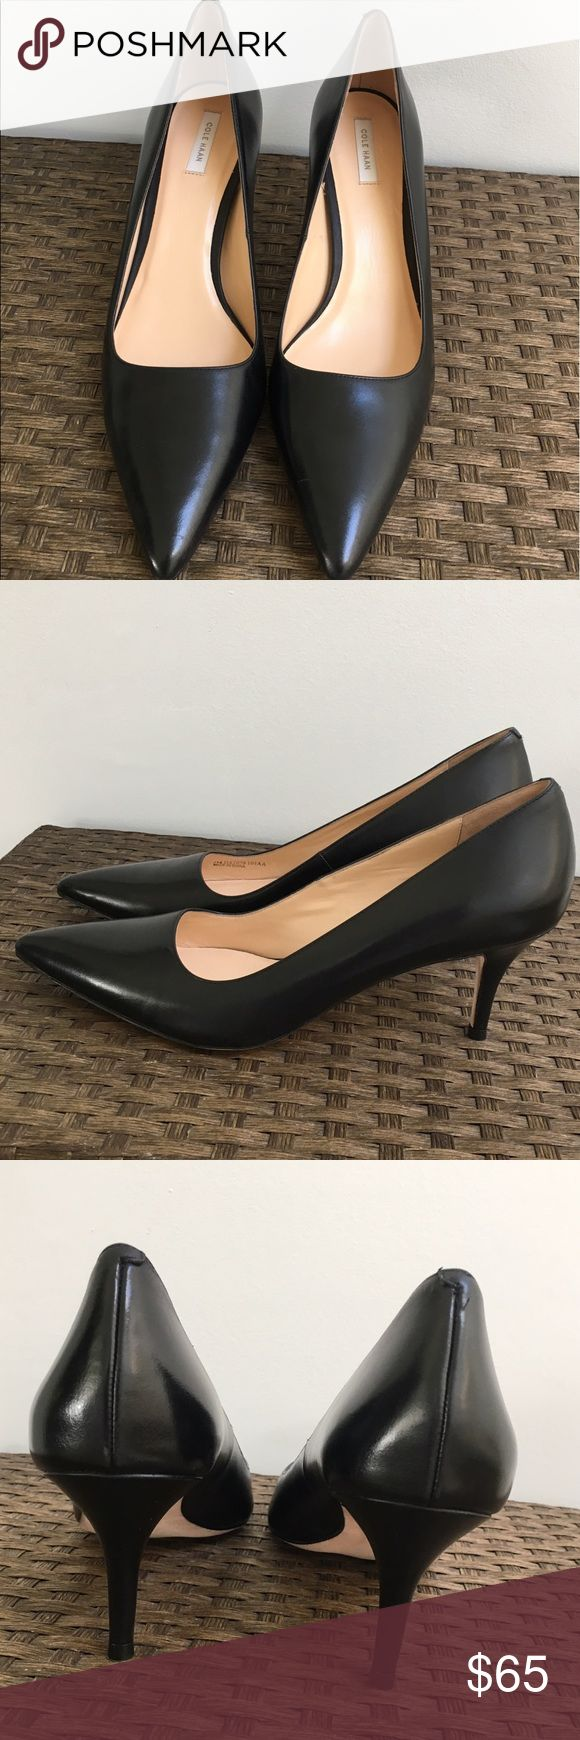 Brand New Cole Haan Pumps Brand New Cole Haan Bradshaw Pumps 3 inch heel, they come with the original box and extra heel tips.  Open to offers! Cole Haan Shoes Heels